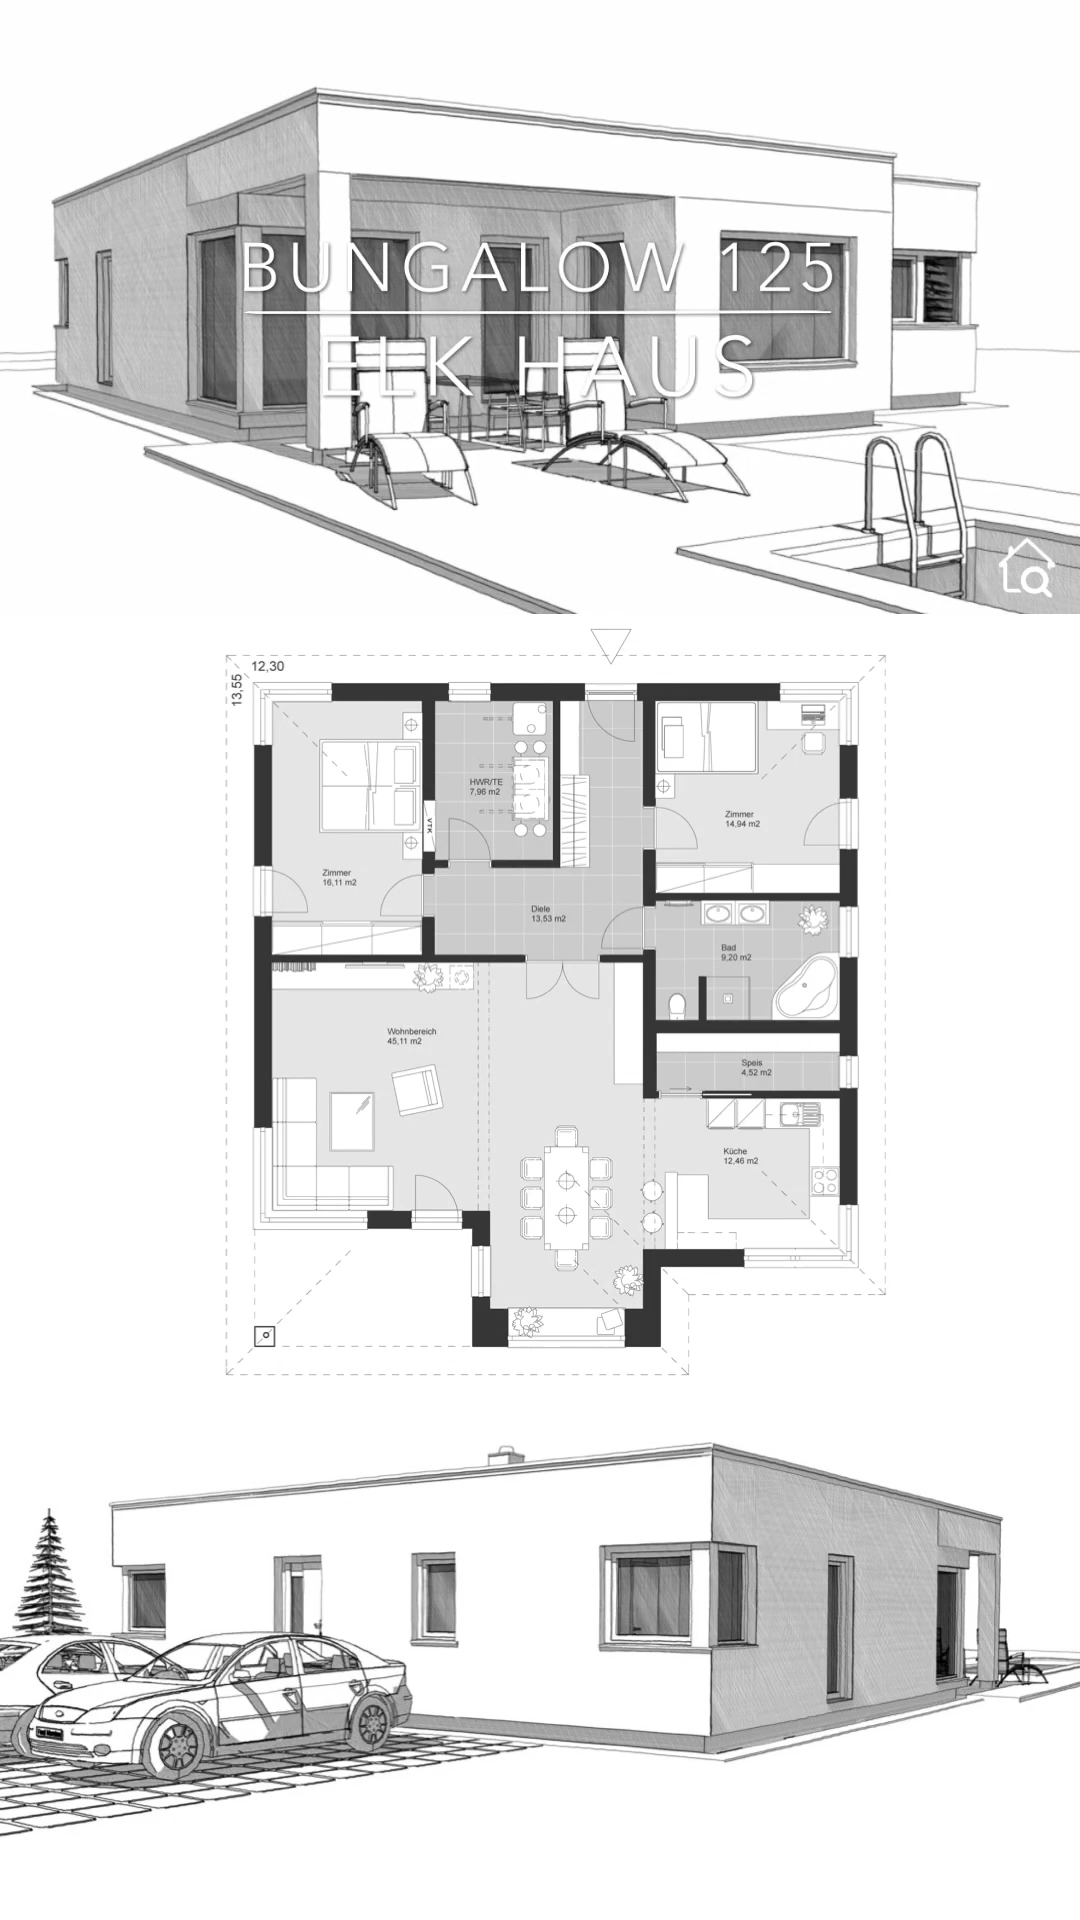 Bungalow House Floor Plans e Level Modern Architecture Design & Dream Home Ideas with Flat Roof